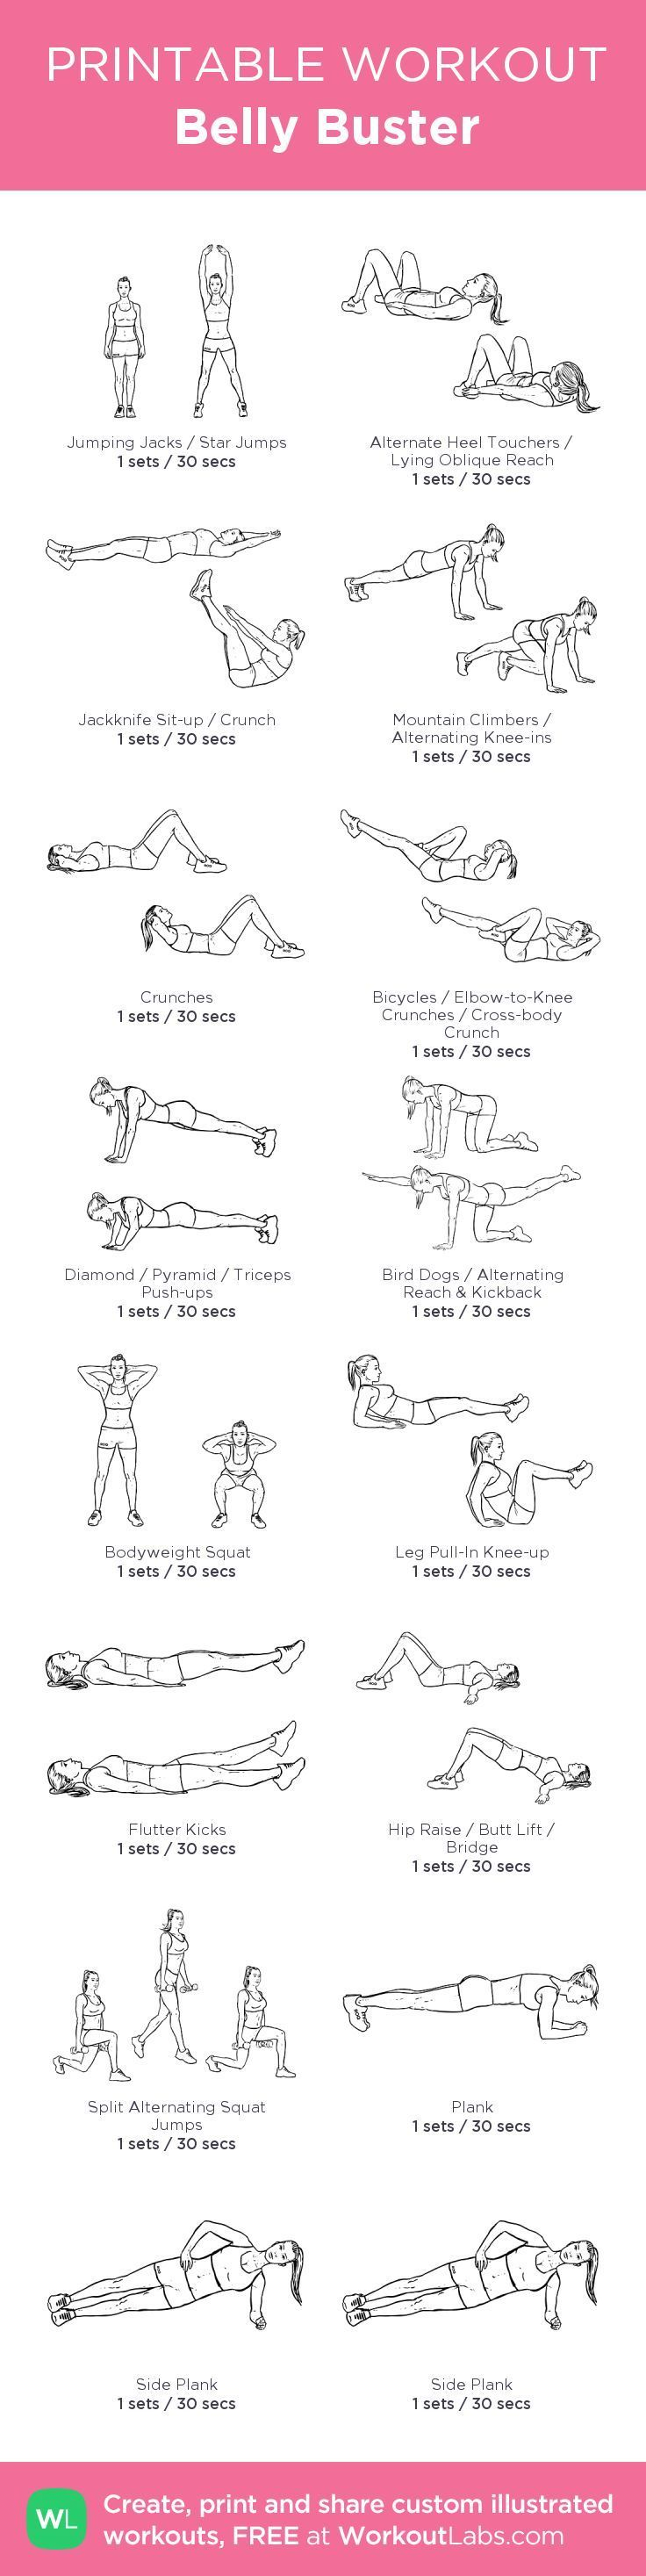 My Personal Belly Buster Workout…